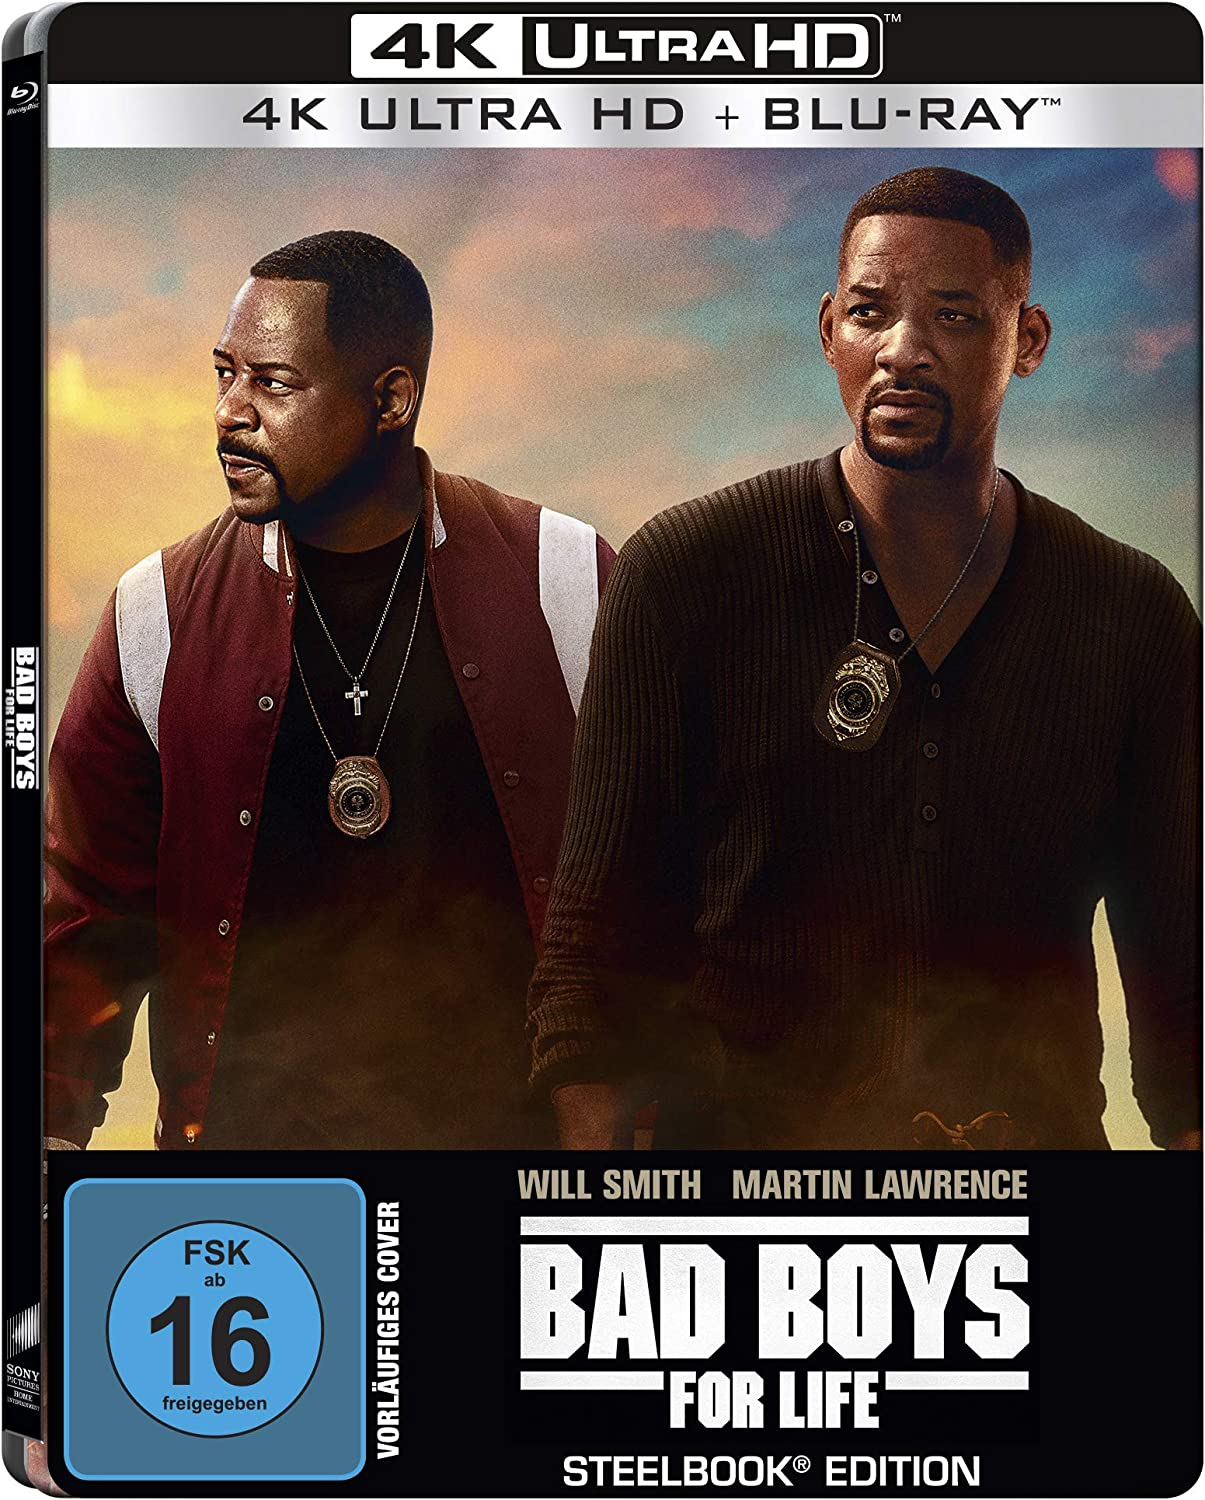 Bad Boys for Life (Steelbook) - 4k Ultra HD [UHD + Blu-ray Disc]